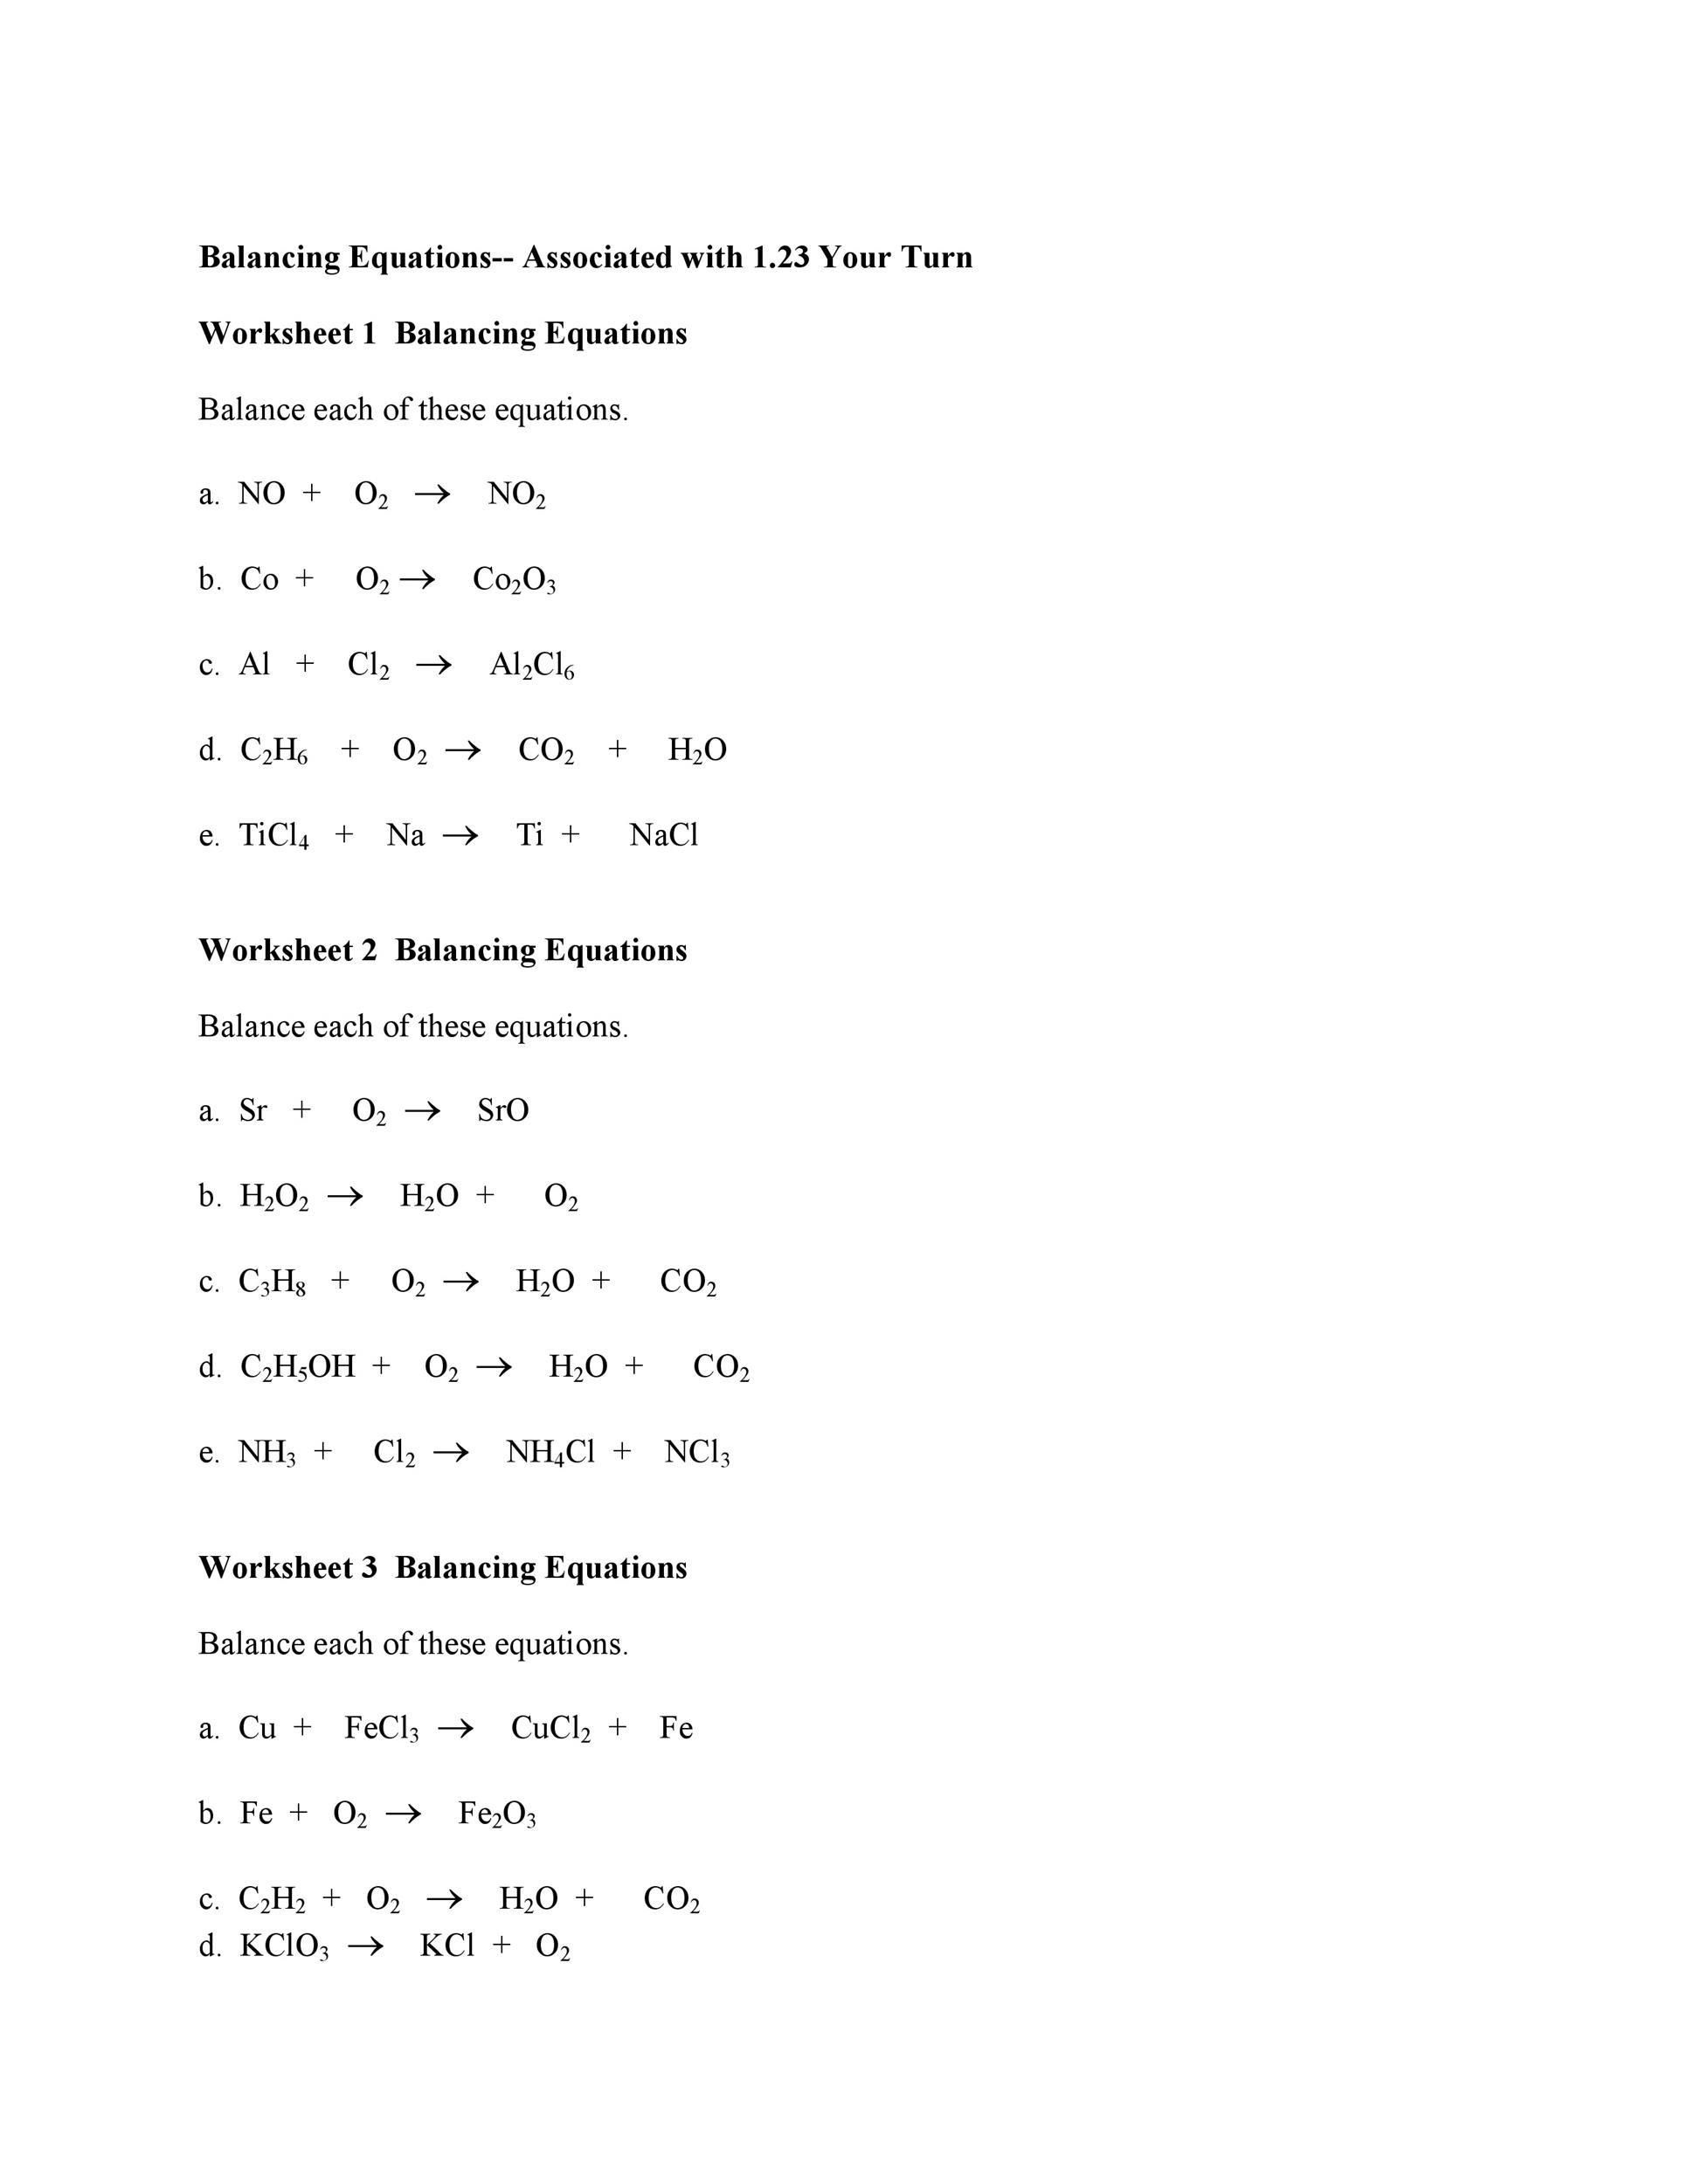 Balancing Equations Worksheet Part 2 Answers